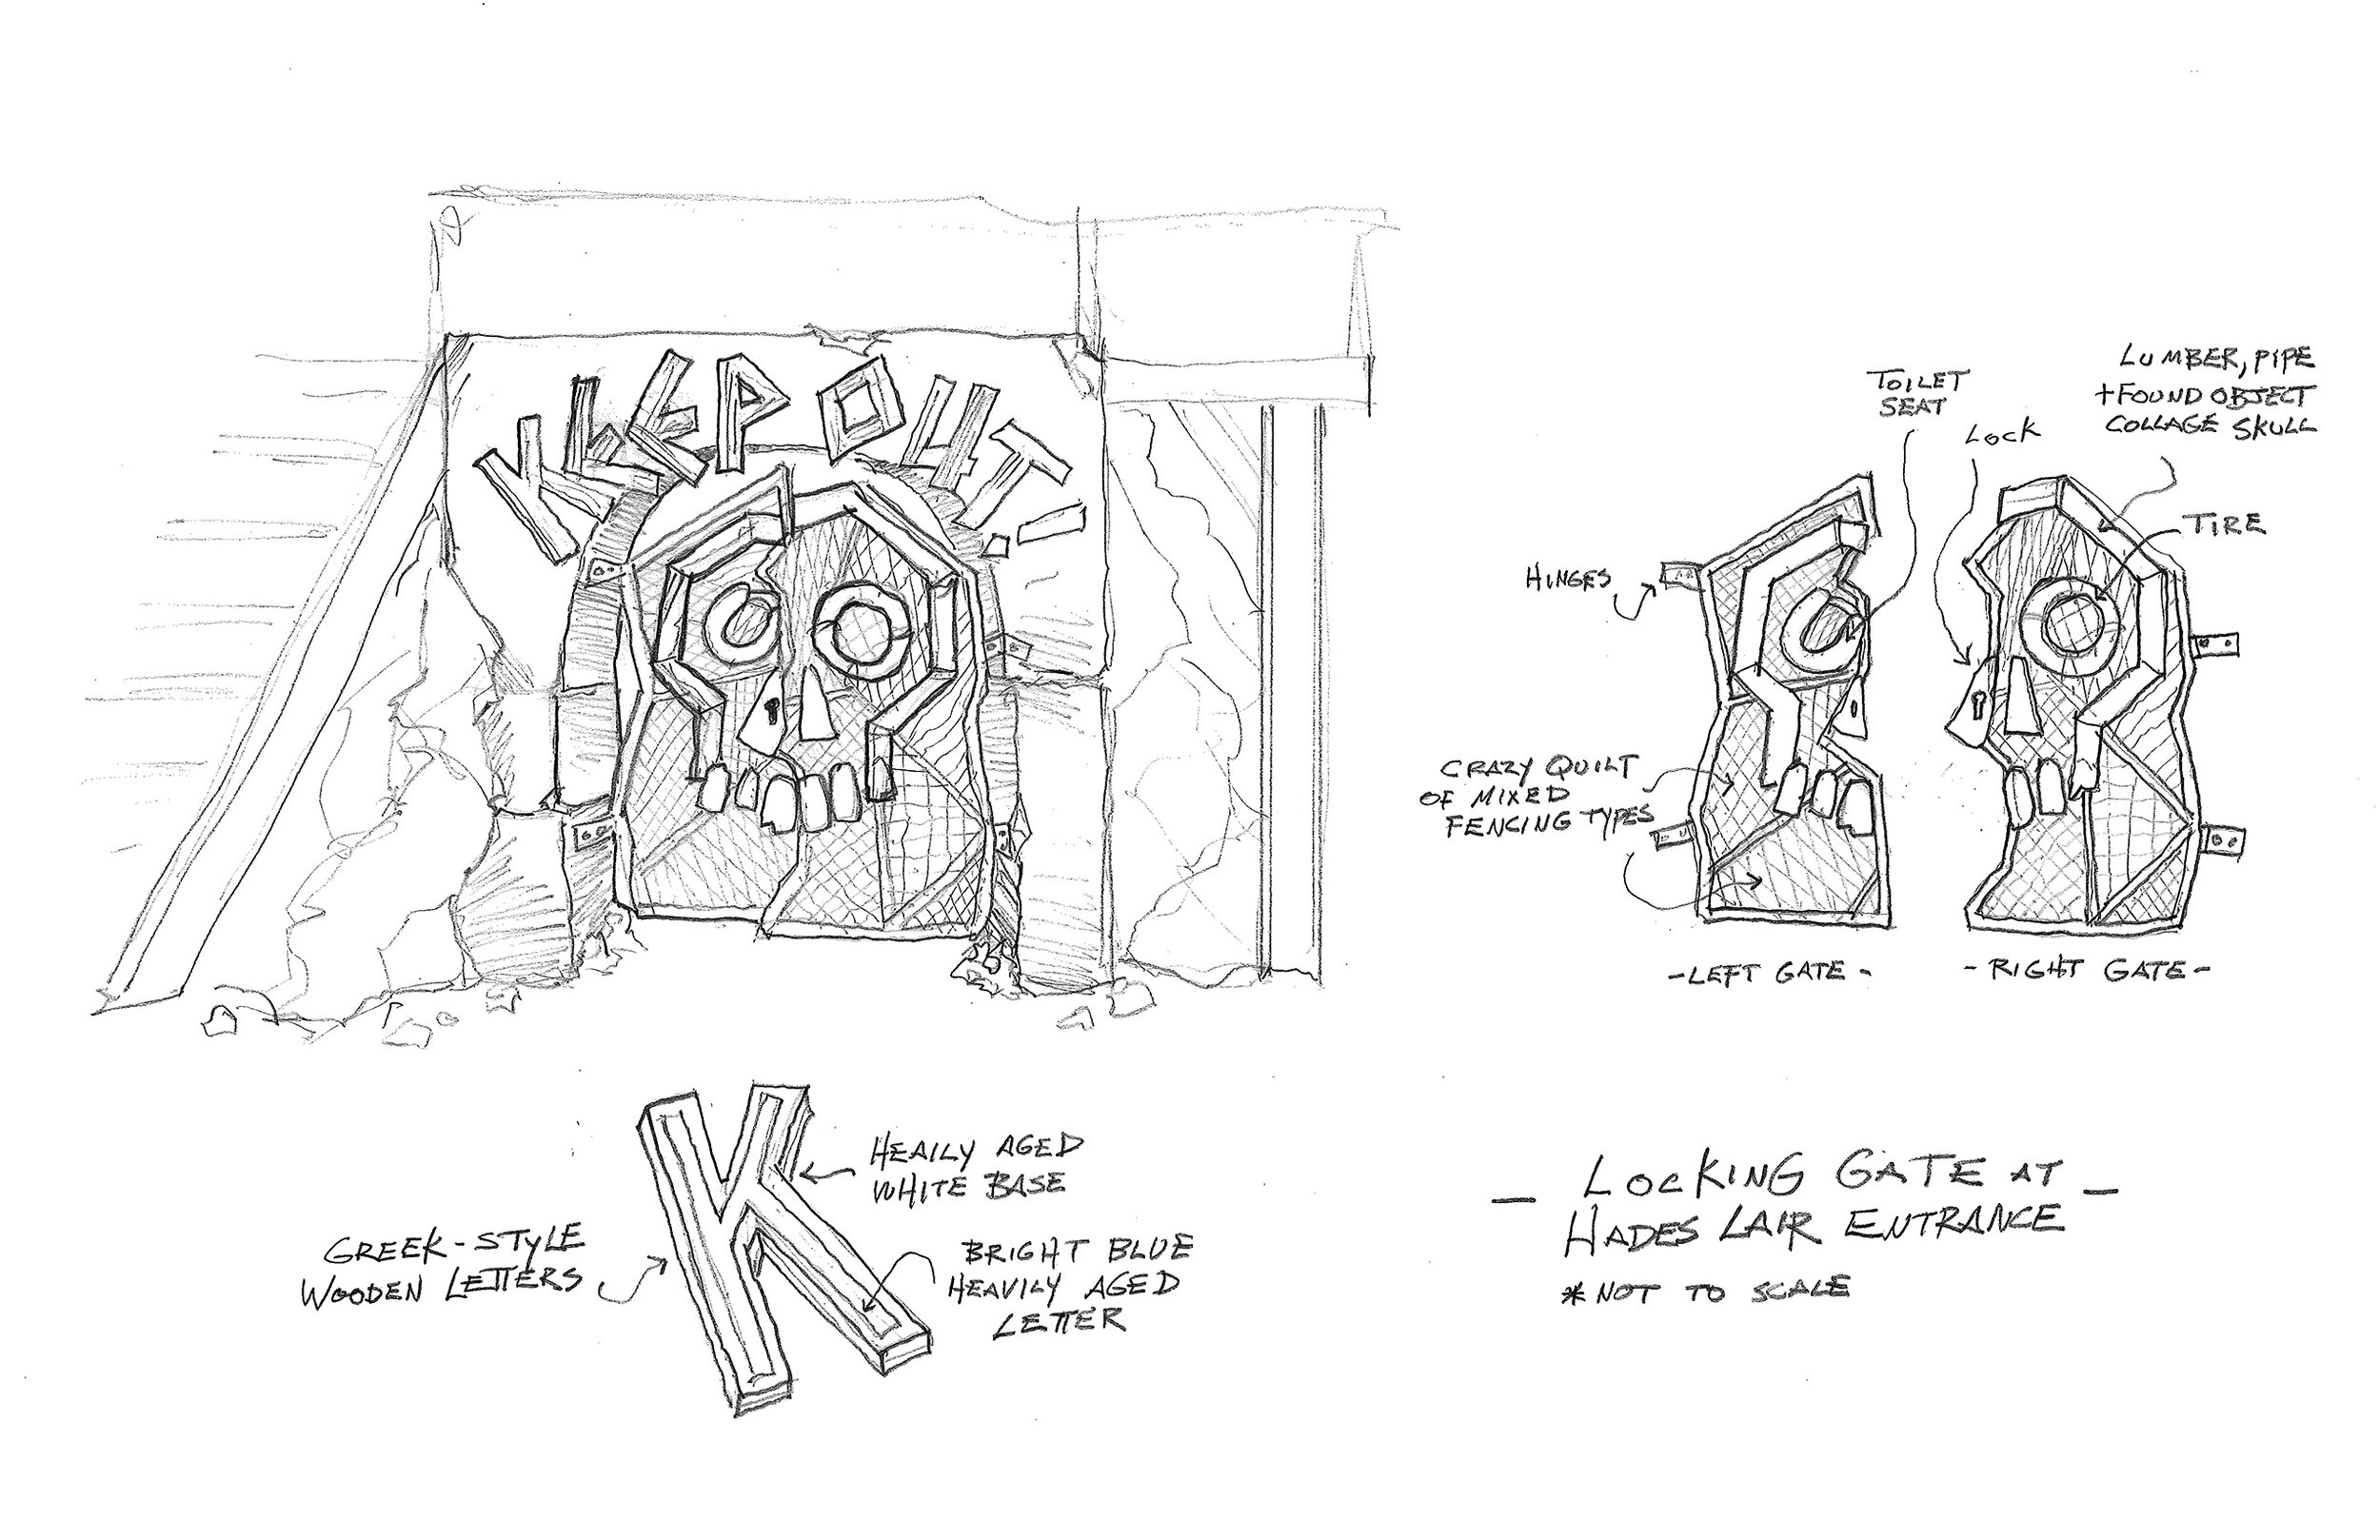 This is my preliminary sketch for the entrance to mighty Hades underground lair on the Isle of the Lost in Descendants 3. The imprisoned Greek god wishes to be left very much alone, so I wanted his ratty gate to reflect that.